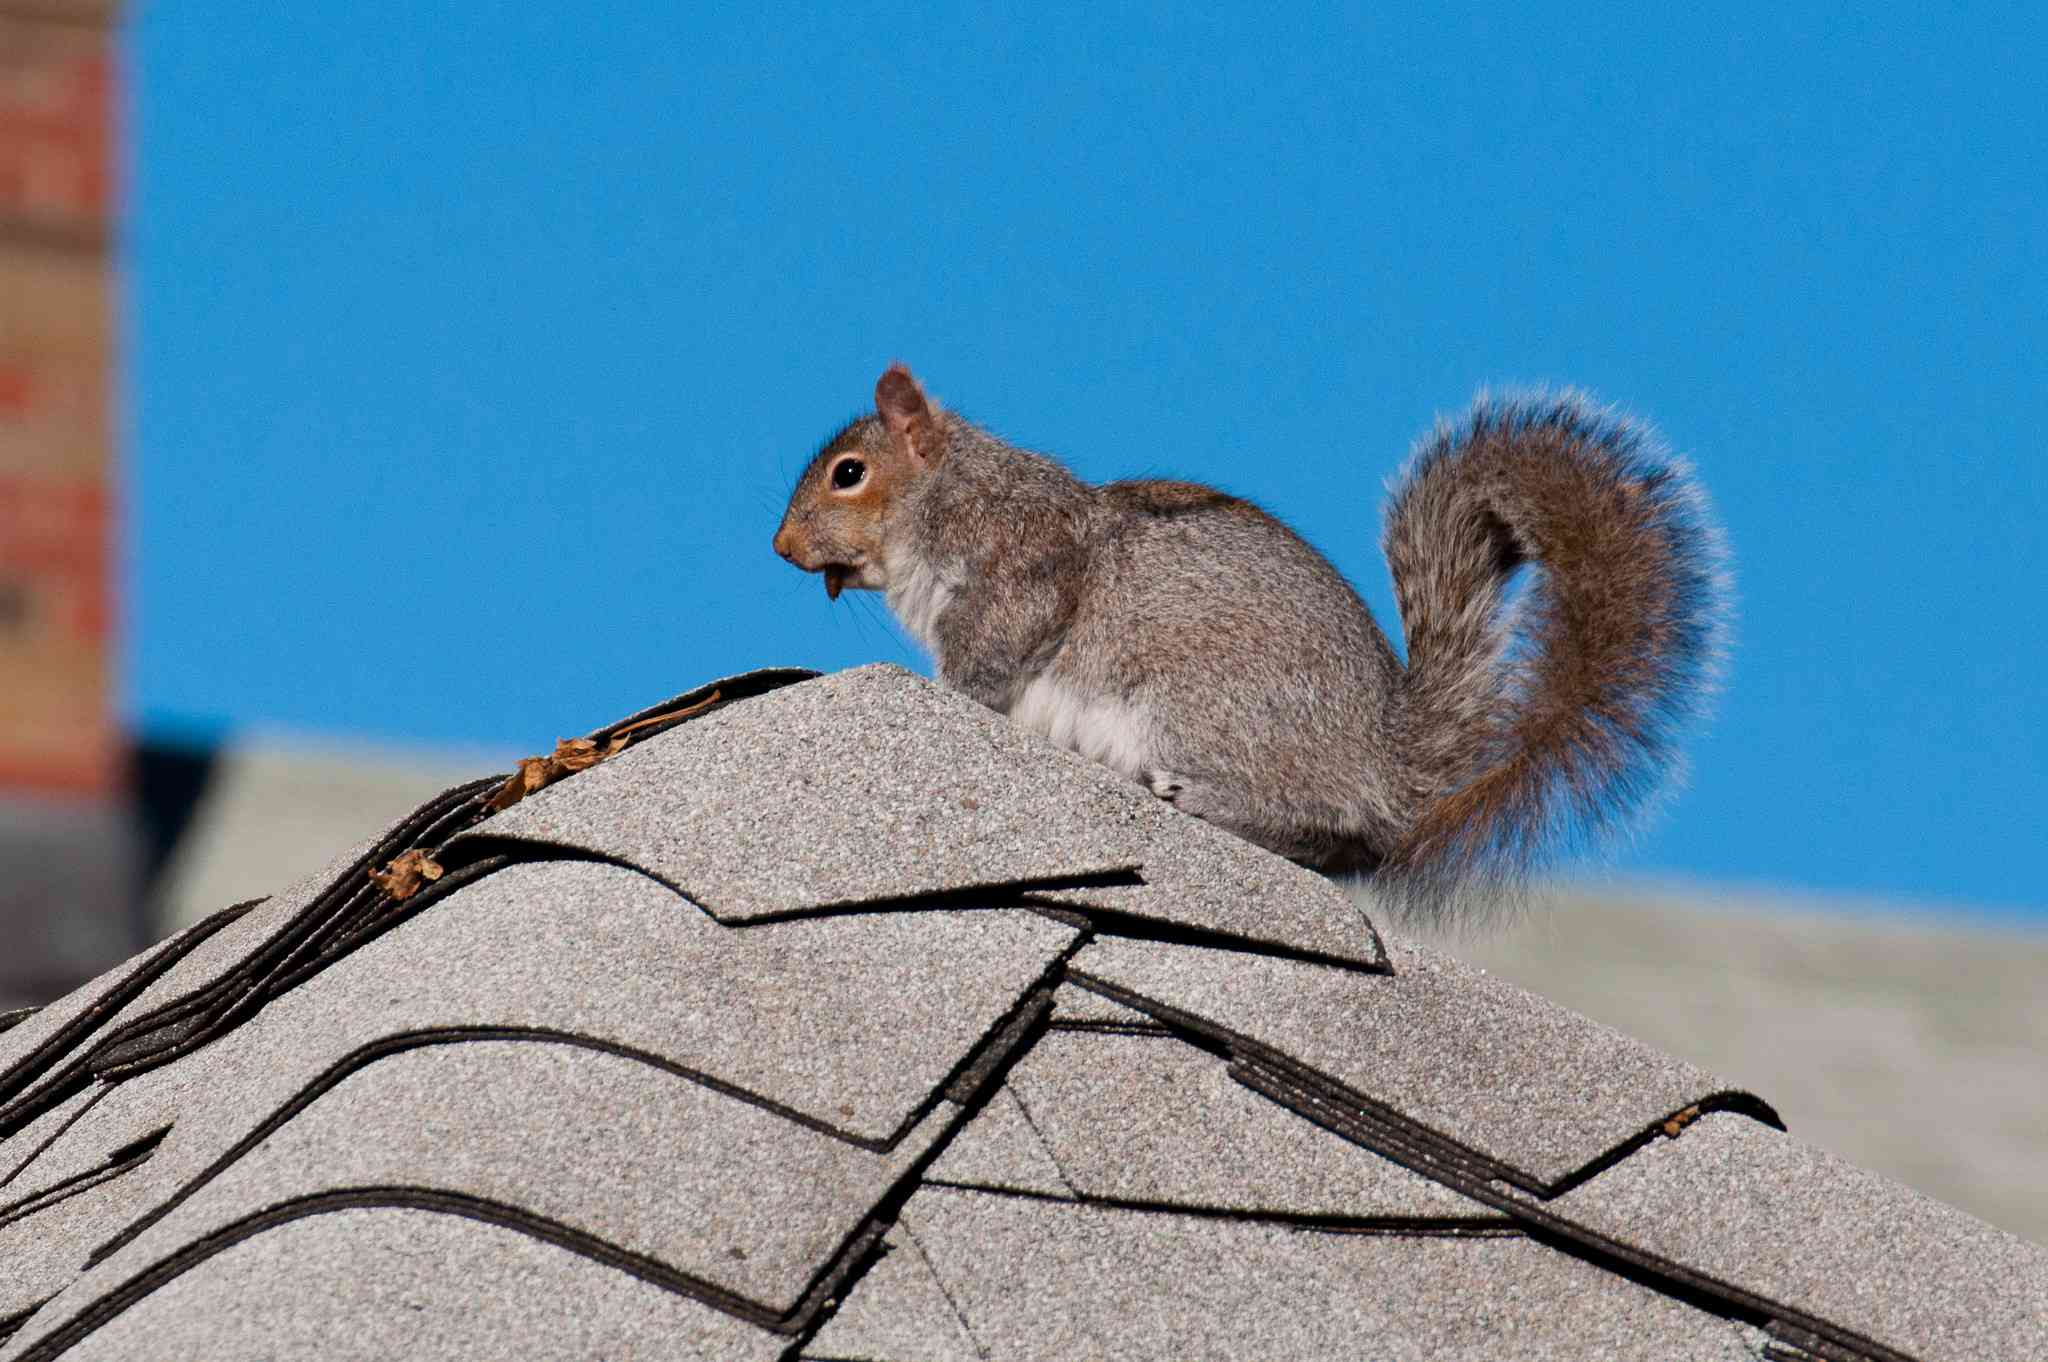 profile of vampire squirrel perched on rooftop